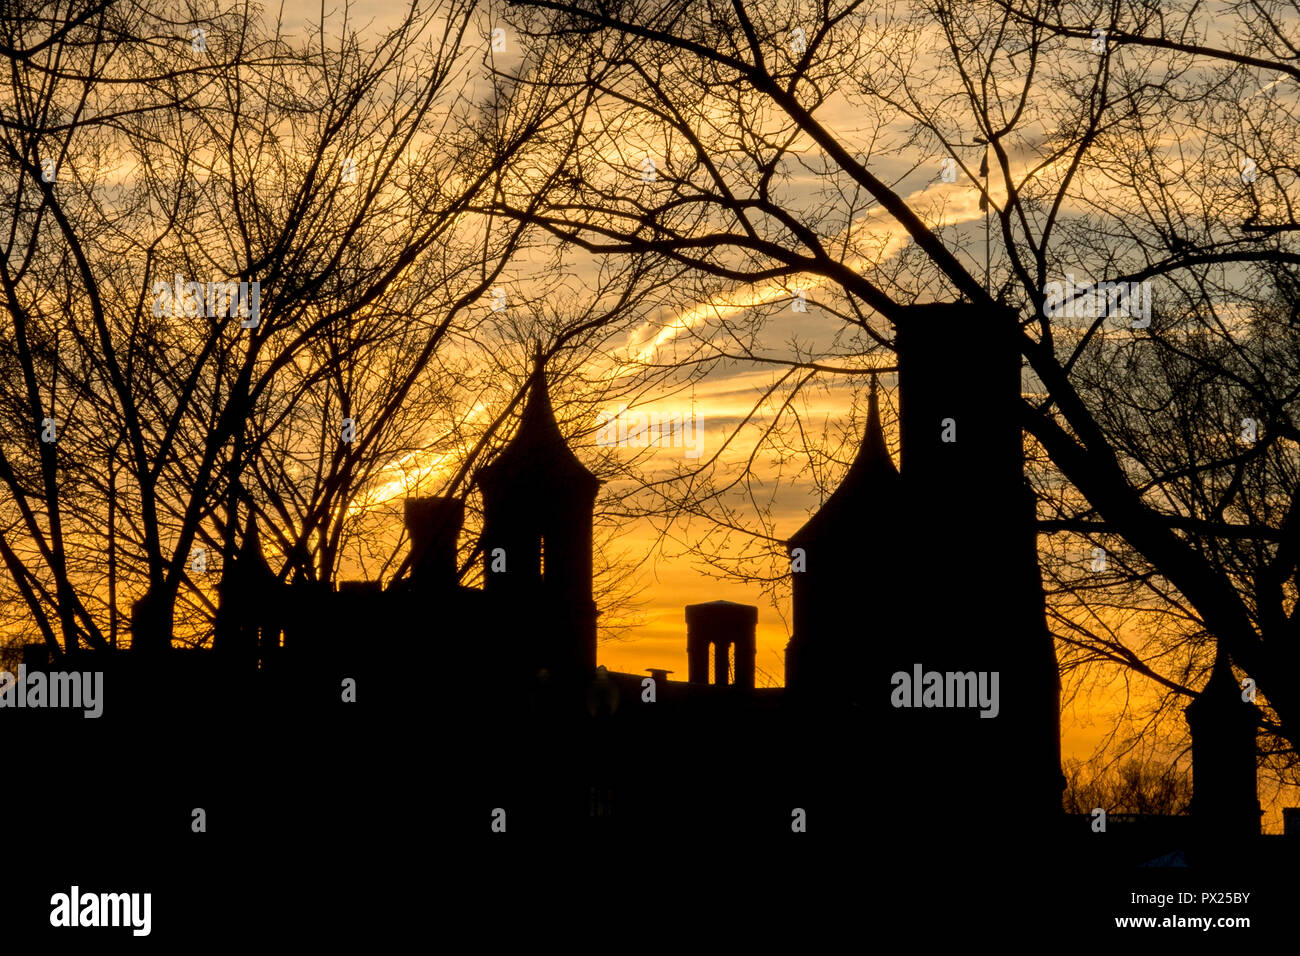 The historic 1855 Smithsonian Institution Administration Building on the National Mall in Washington, DC is silhouetted against a winter sunset and framed by bare tree branches. - Stock Image